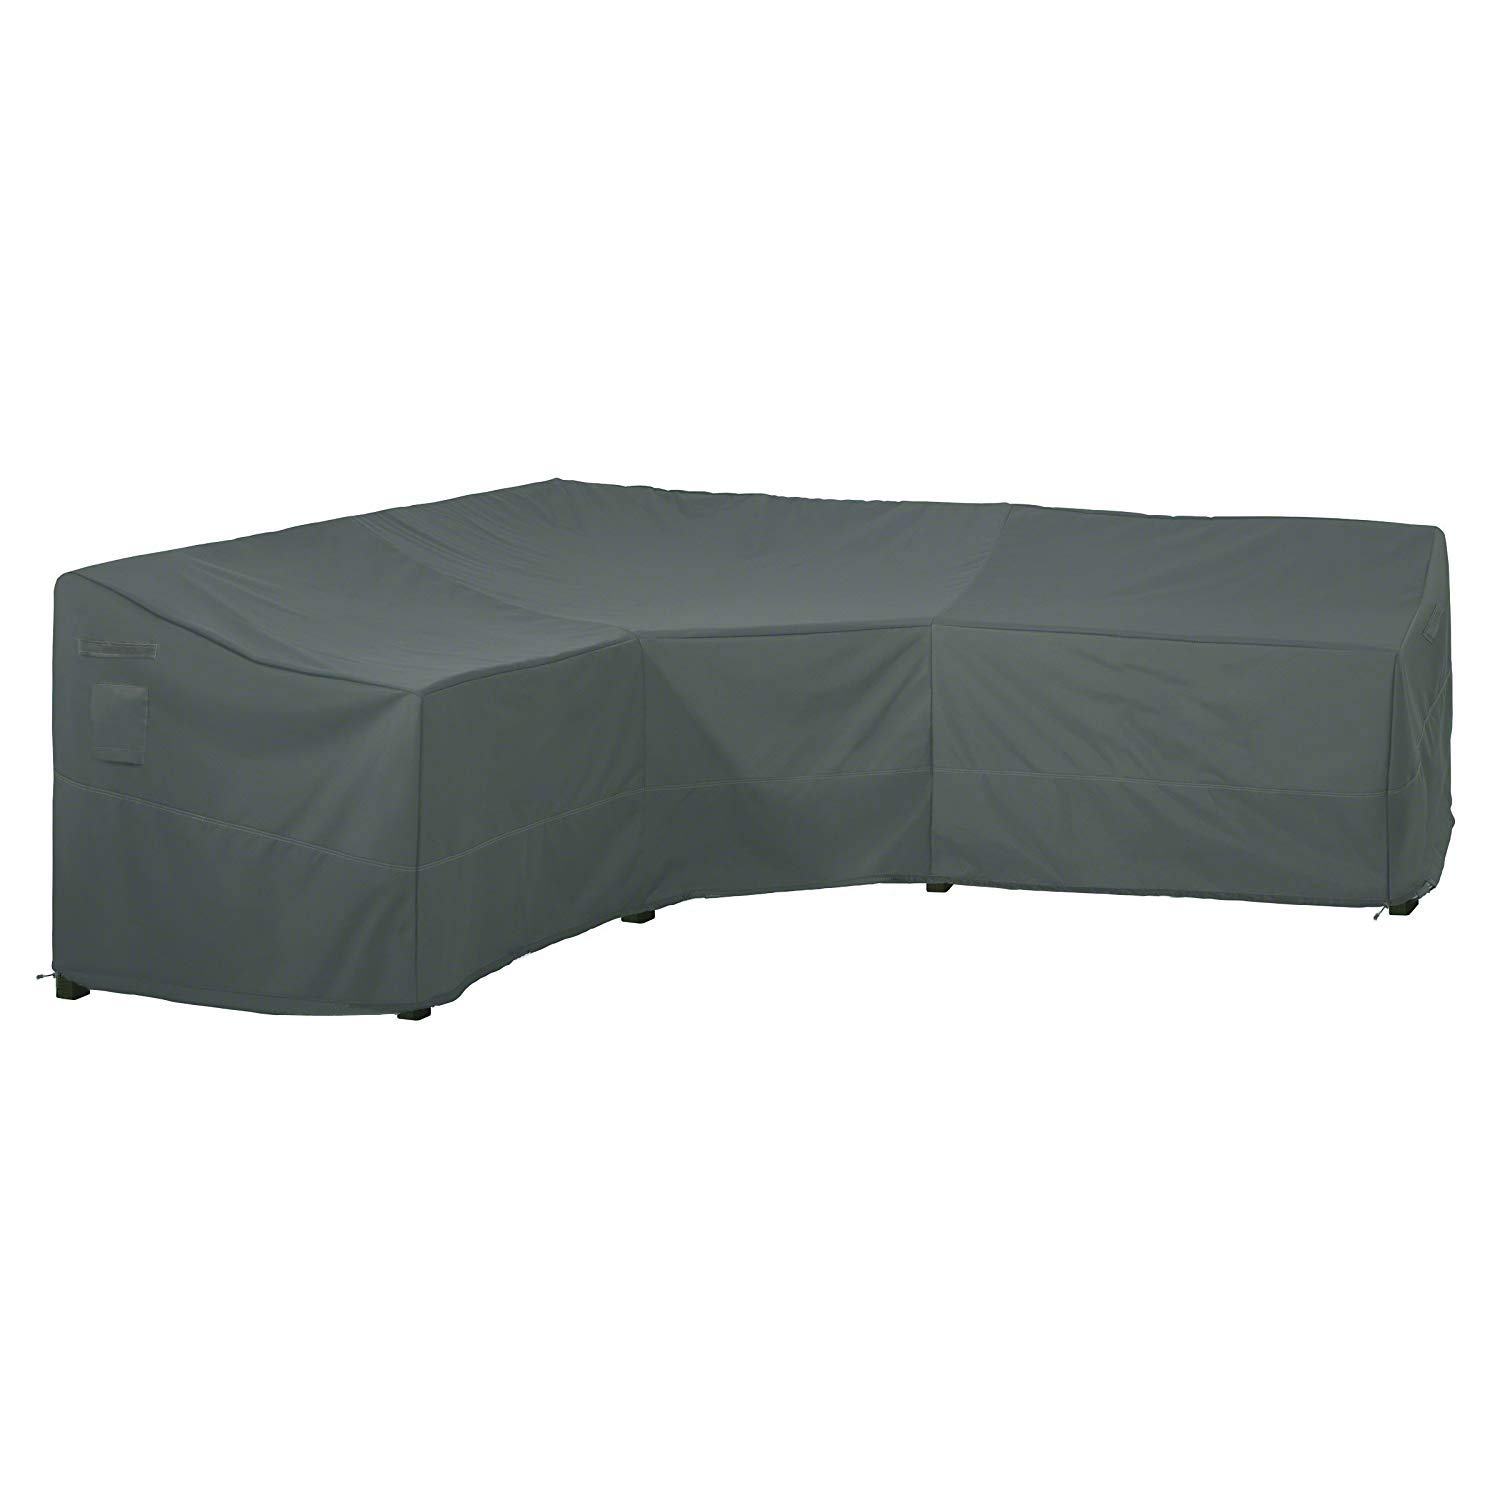 Delxo Ravenna Sectional Sofa Cover Waterproof - 100% UV & Weather Resistant PVC Coated, V-Shaped by Delxo (Image #1)